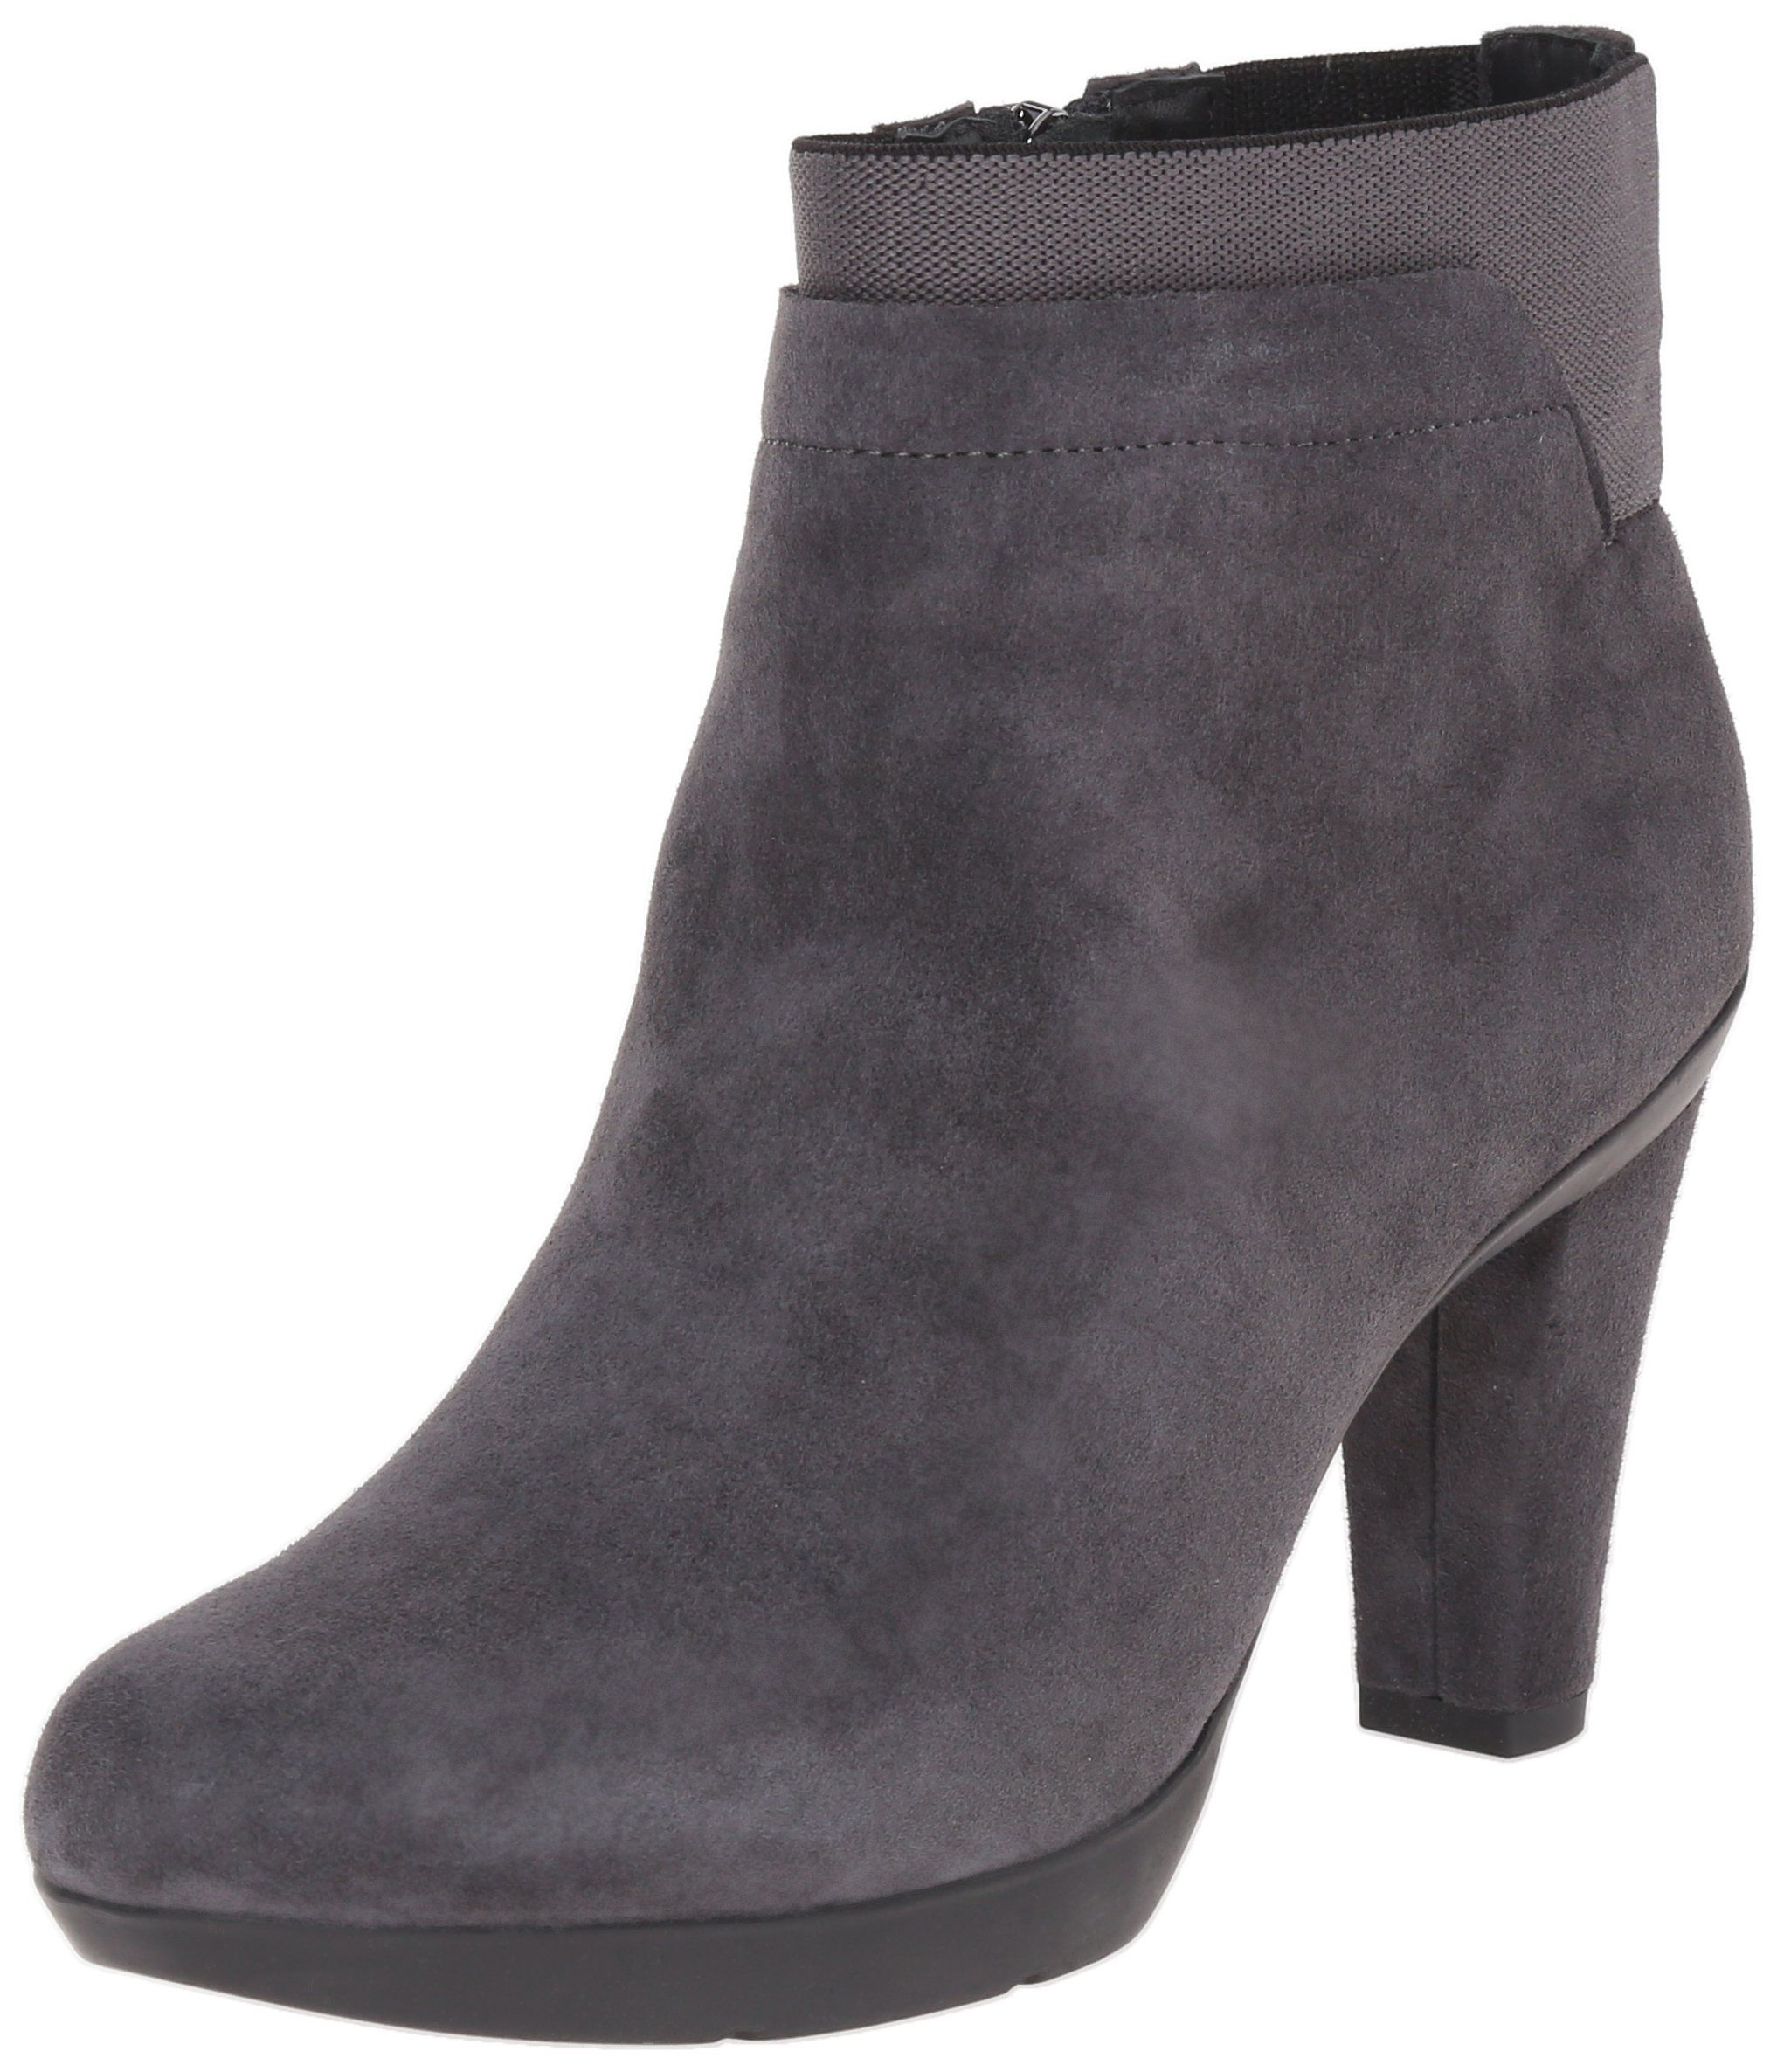 Geox Women's Inspriation Suede Bootie Boot, Anthracite, 41 EU/10.5 M US. Compact ankle boot with layered shaft and tonal block heel. Side zip entry.